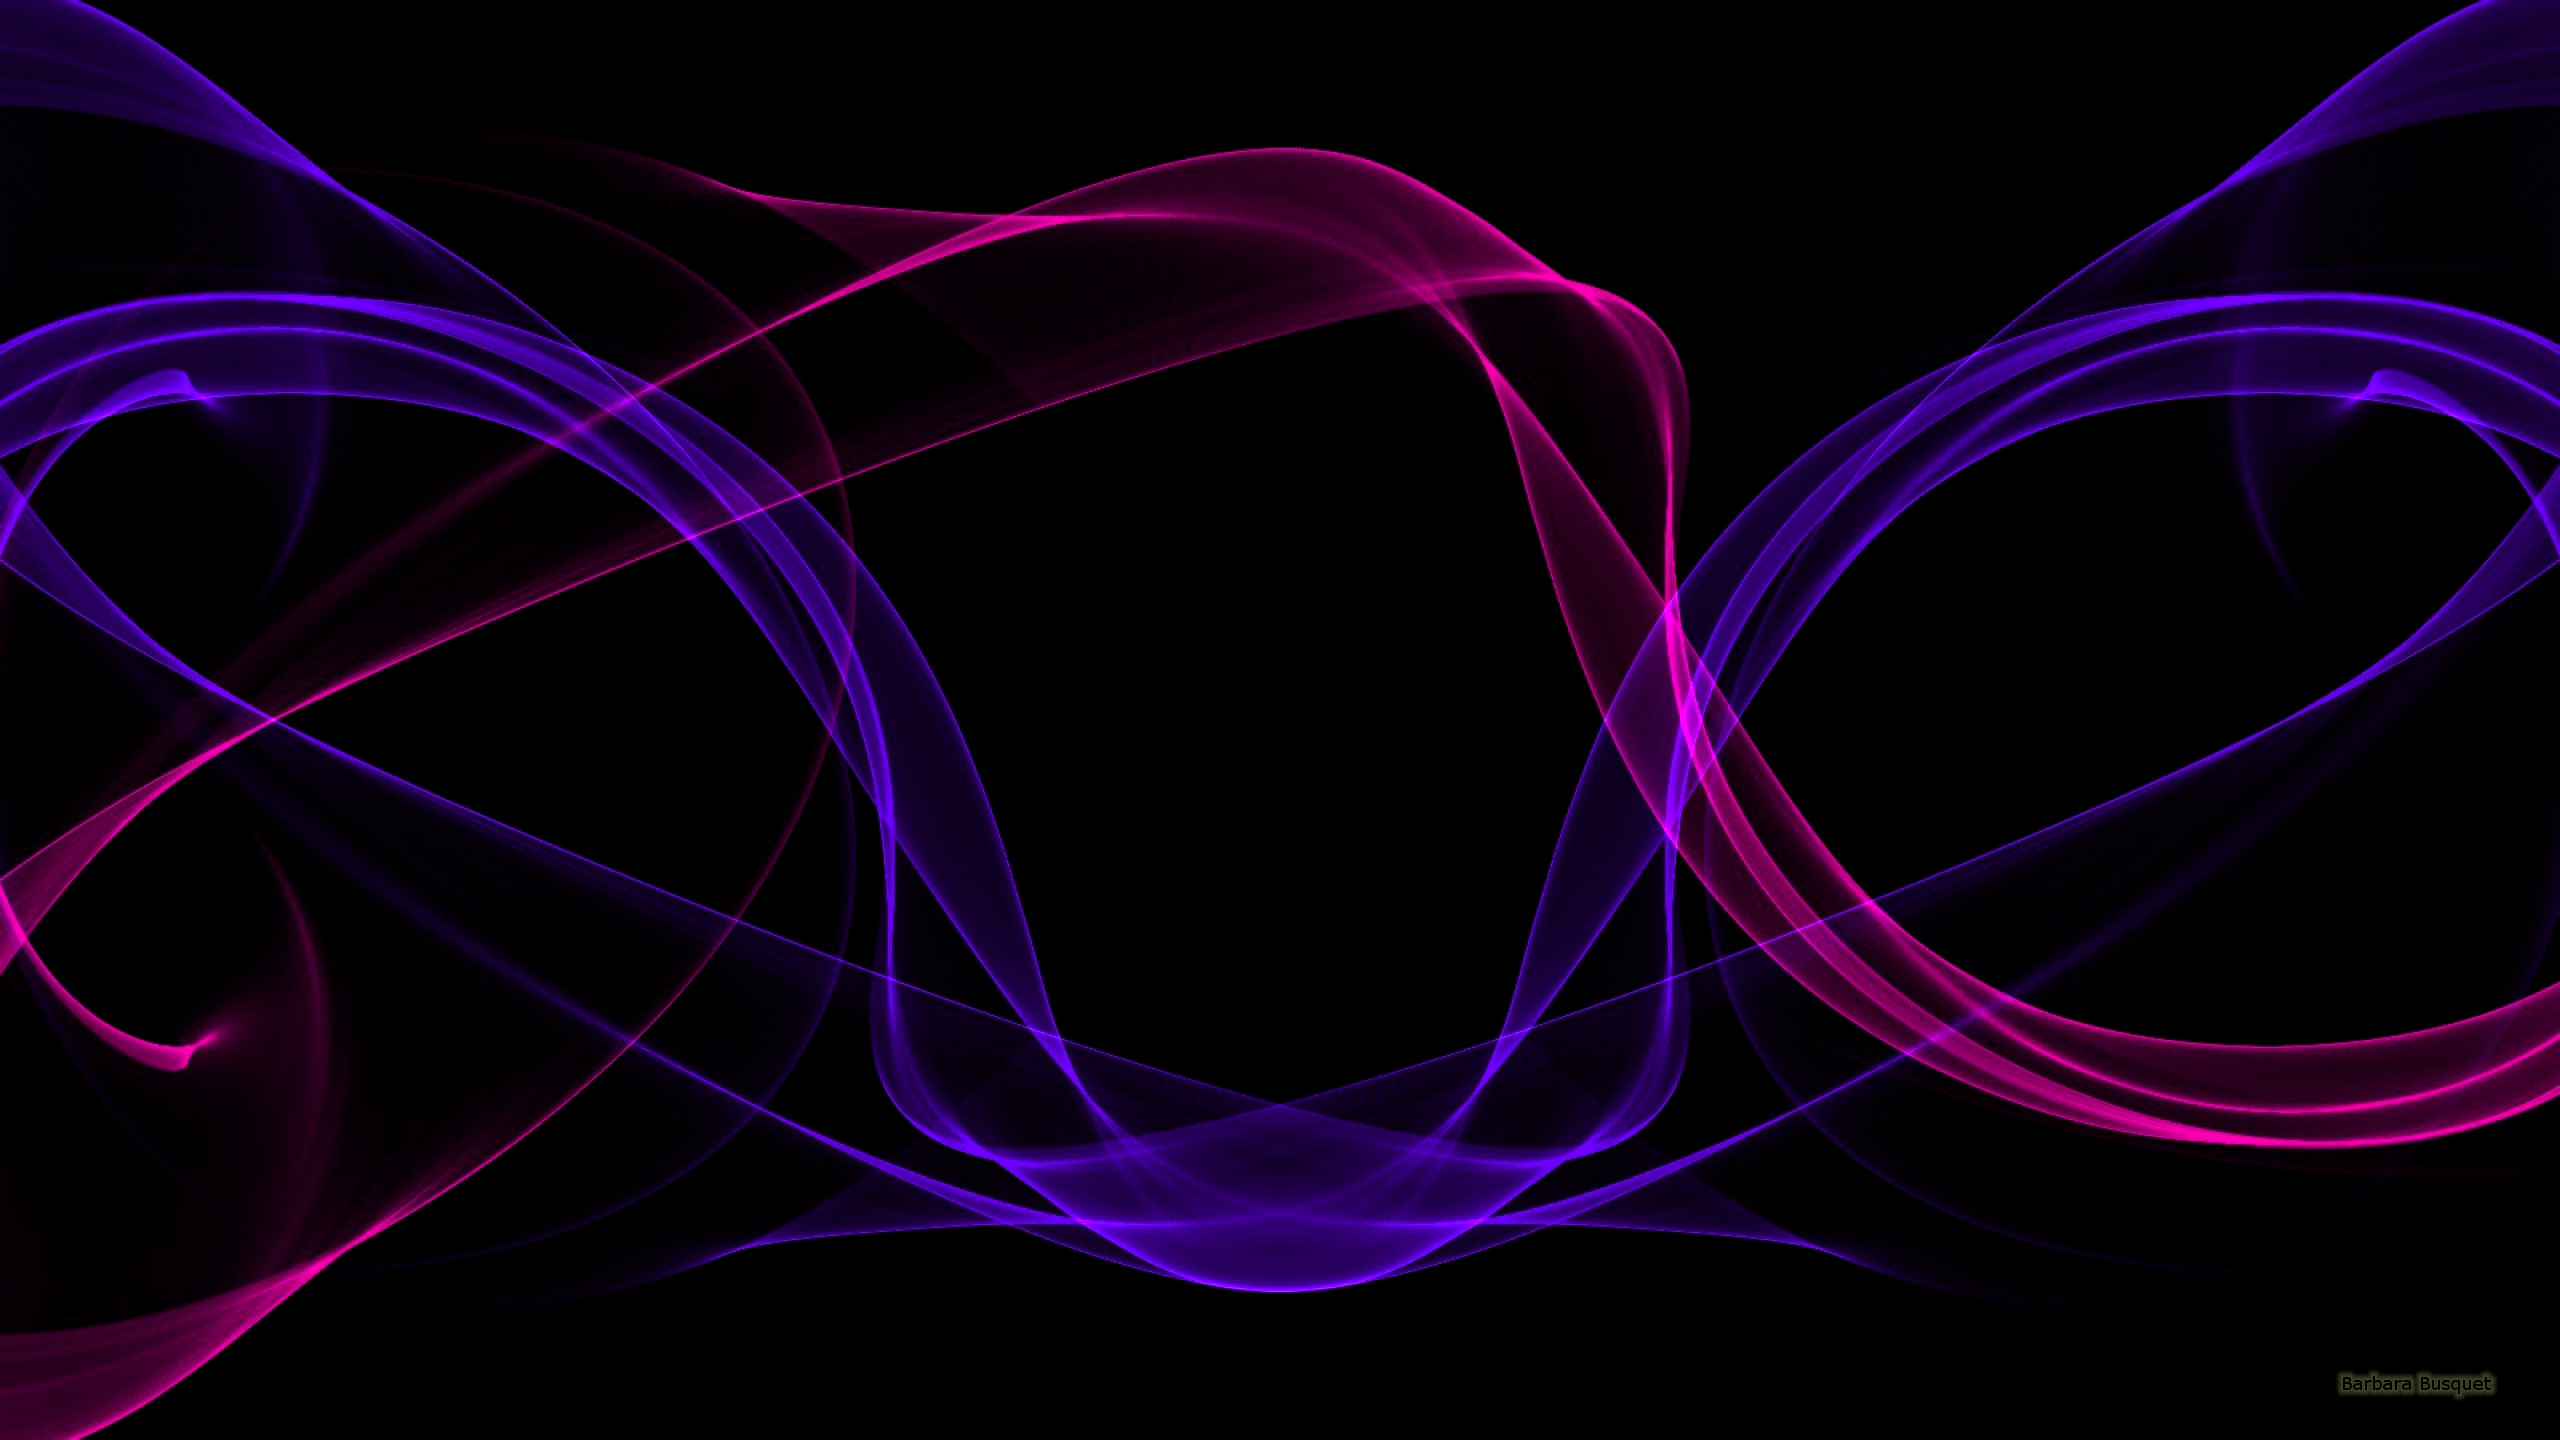 Black Abstract Wallpaper With Purple And Pink Waves